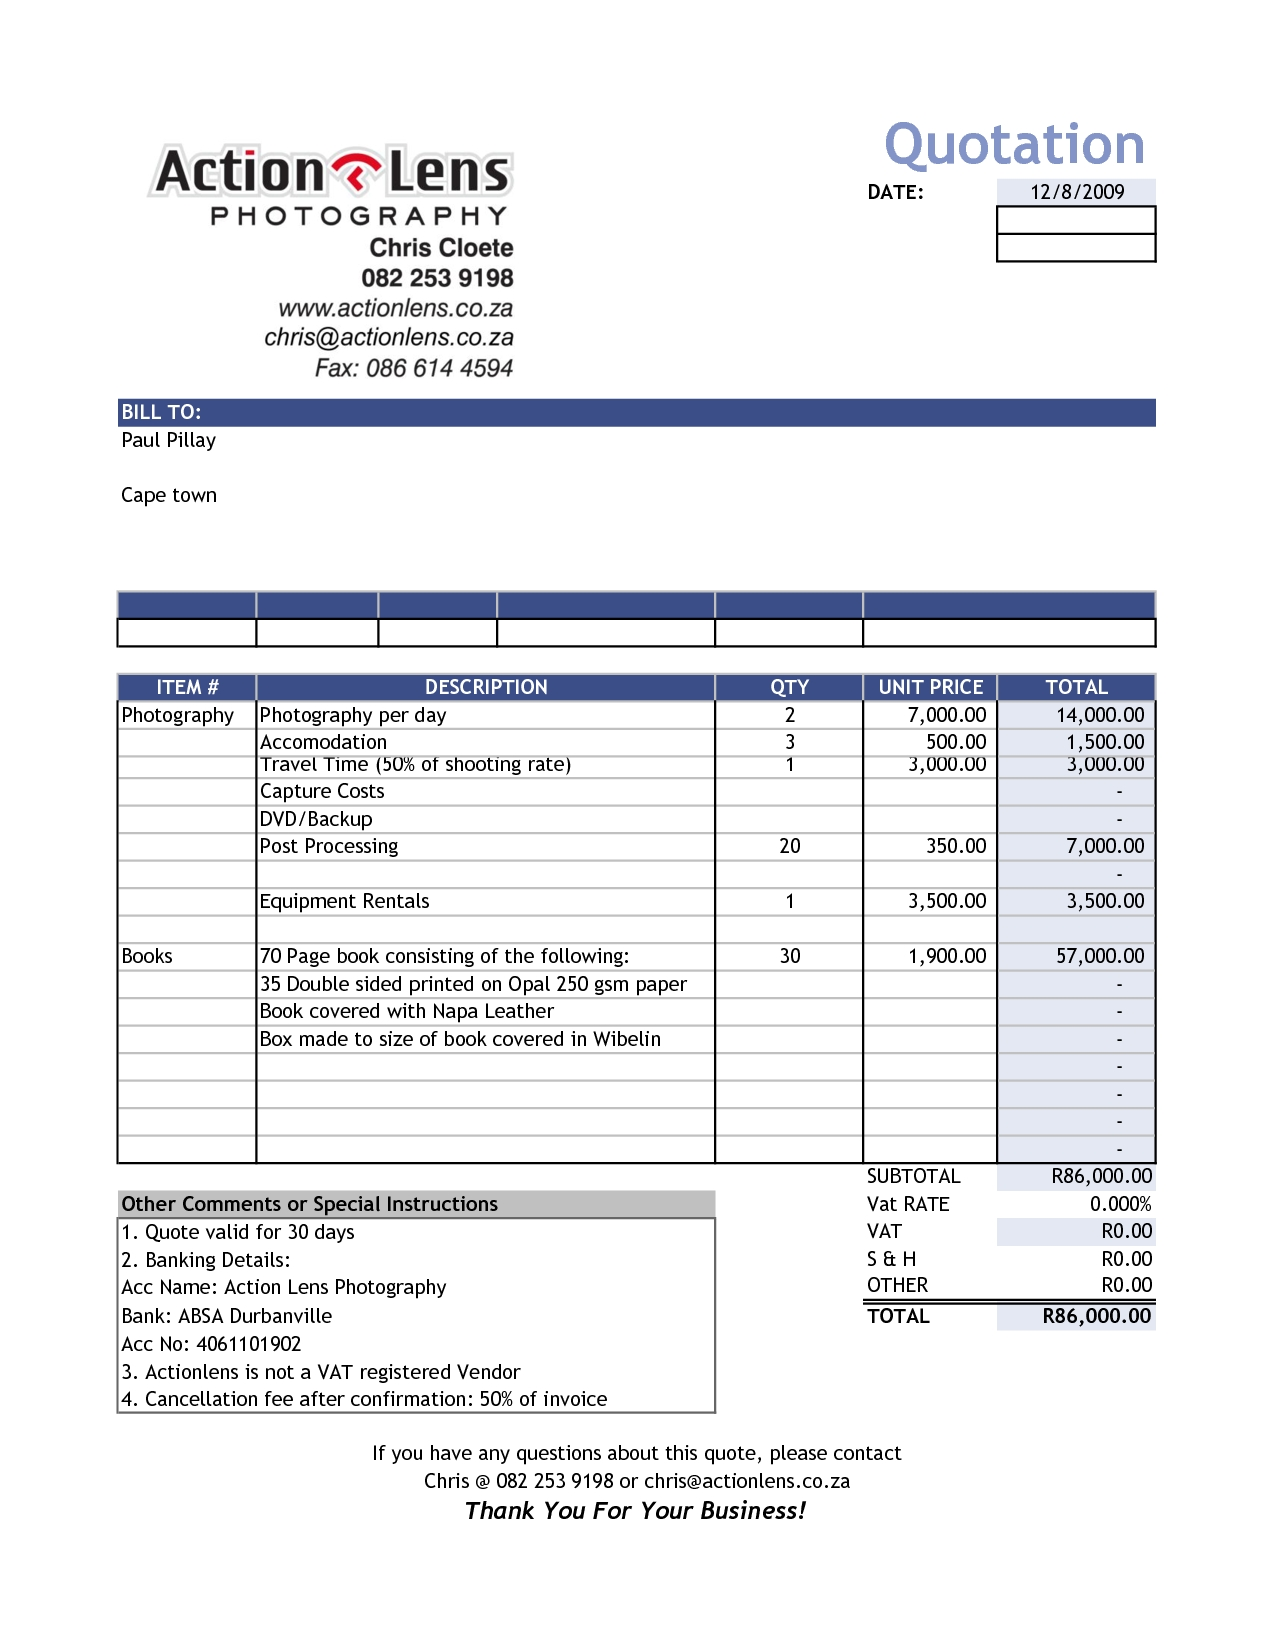 sales invoice template invoice templat free sale invoice forms example of sales invoice